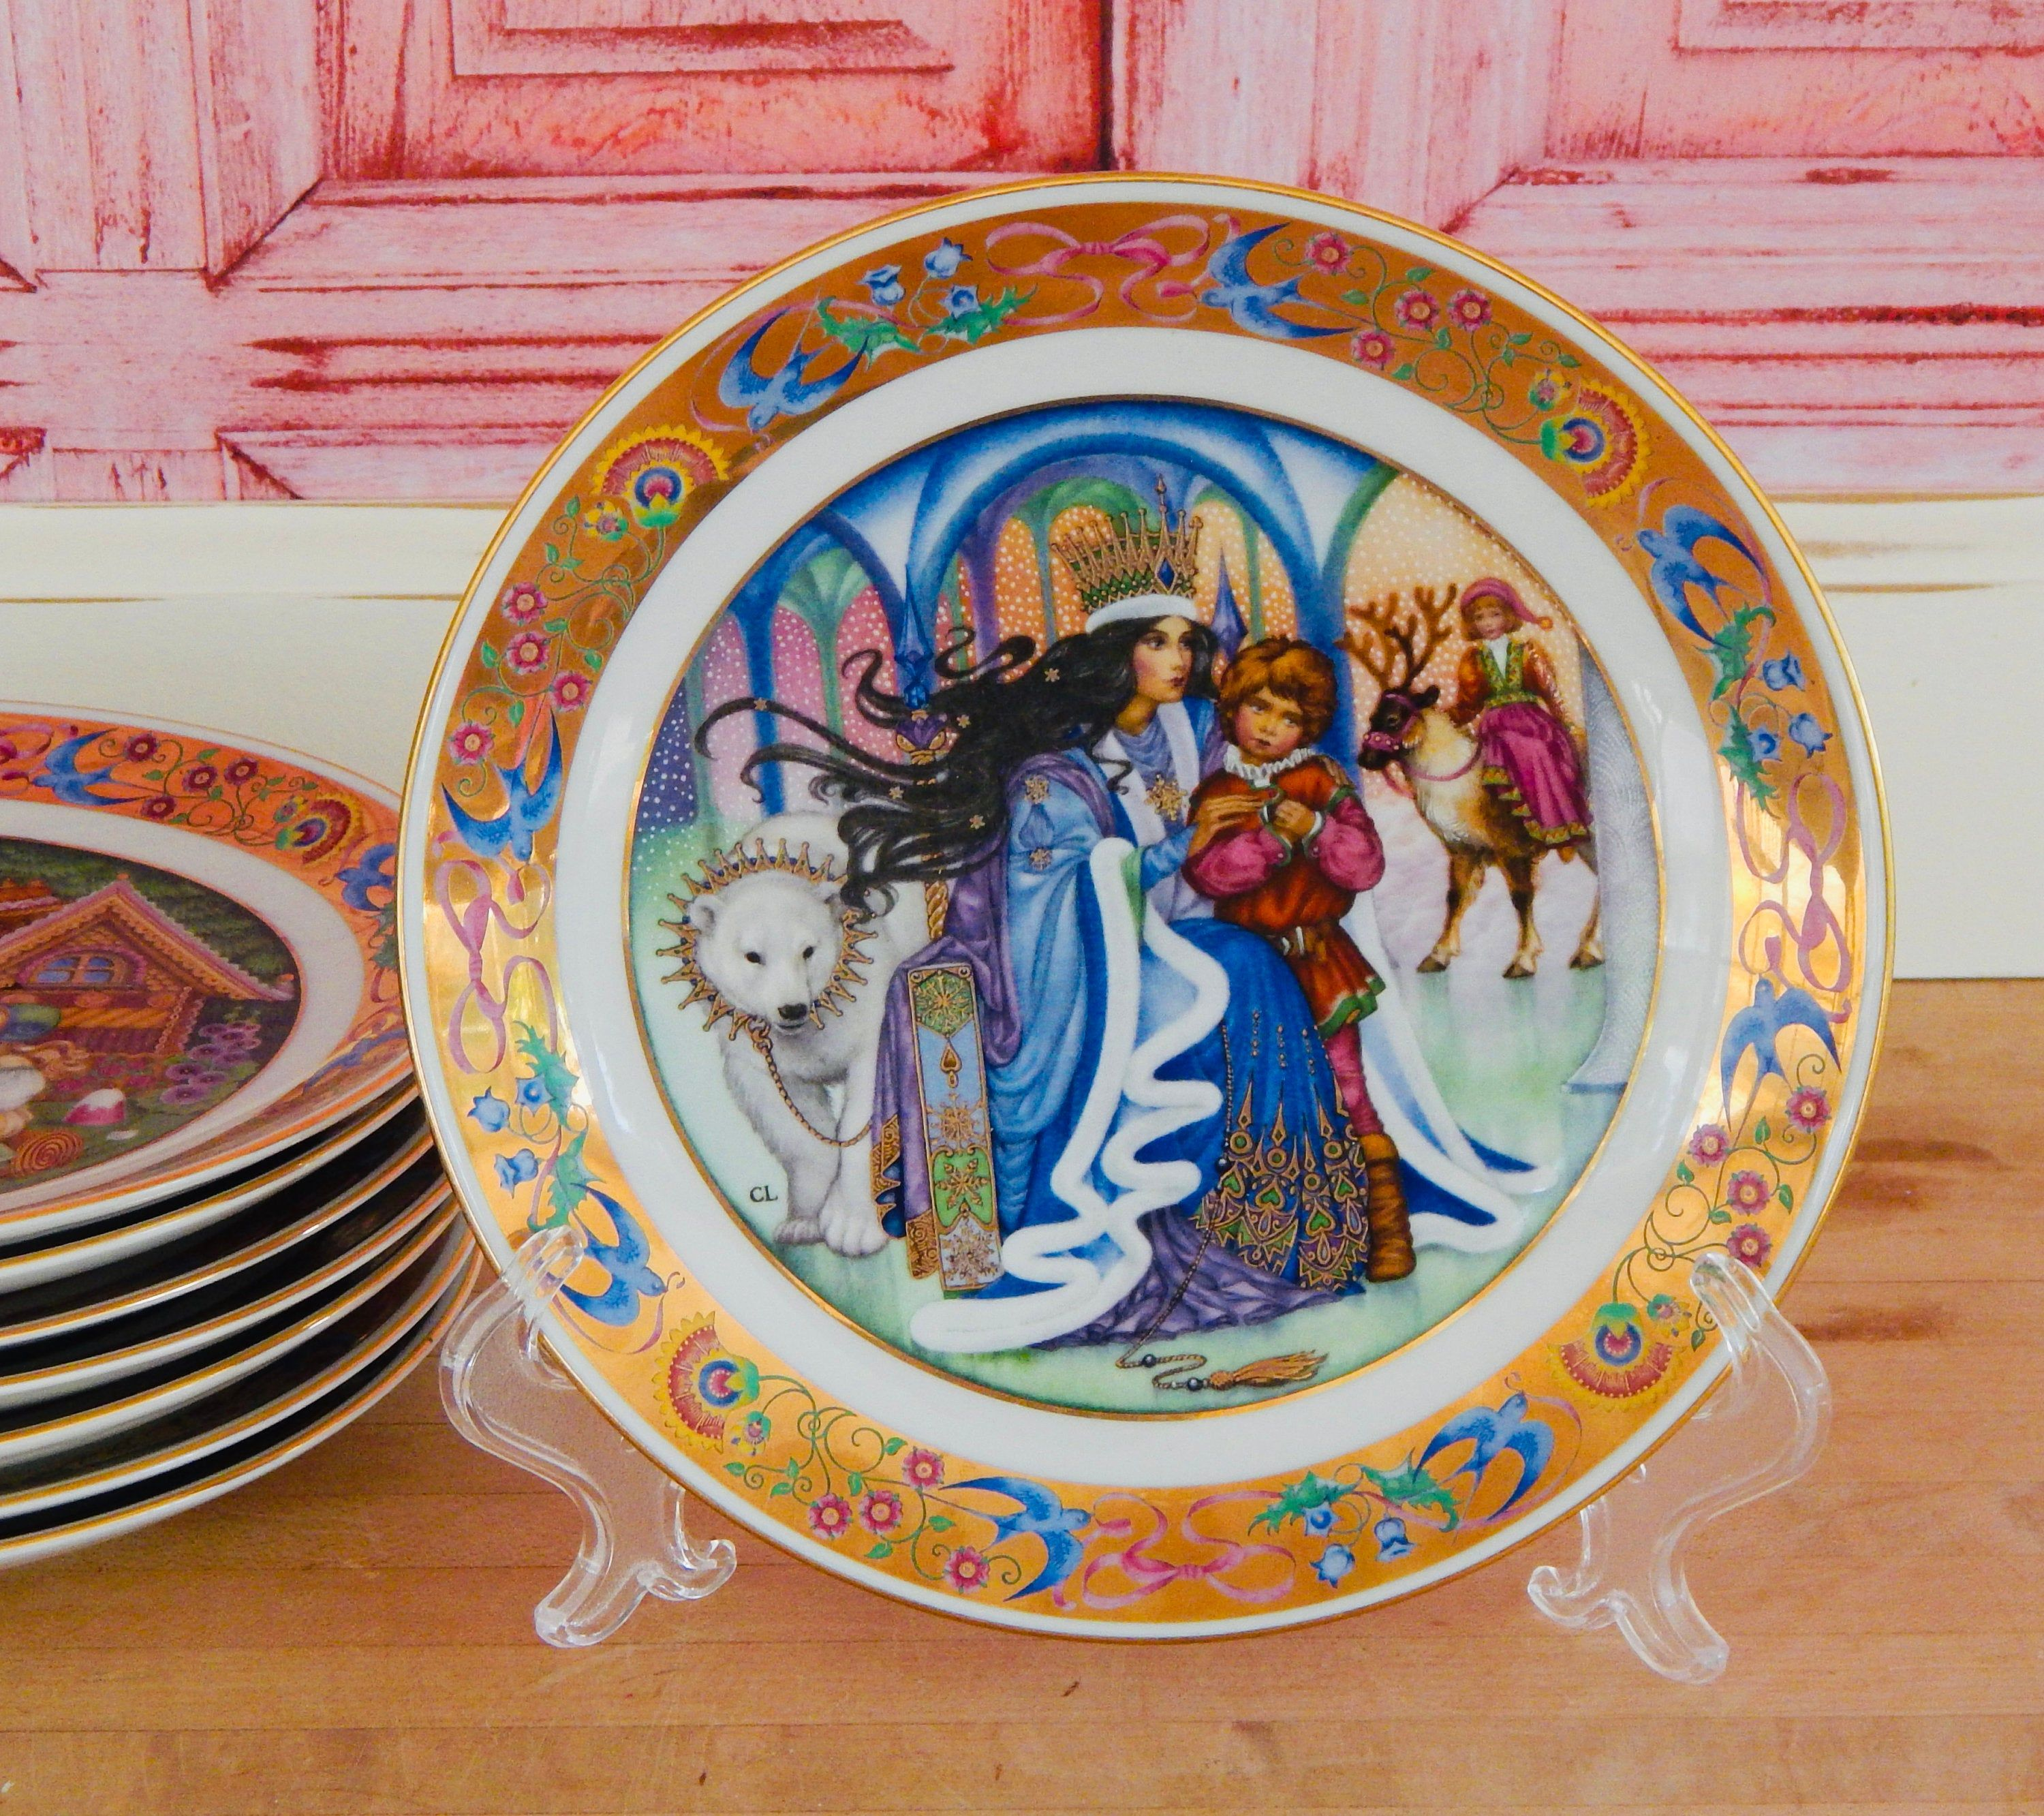 Collectible Plates The Golden Classic Plate Collection By Carol Lawson Snow White Cinderella Sleeping Beauty Classic Plates Collectable Plates Sleeping Beauty Fairies